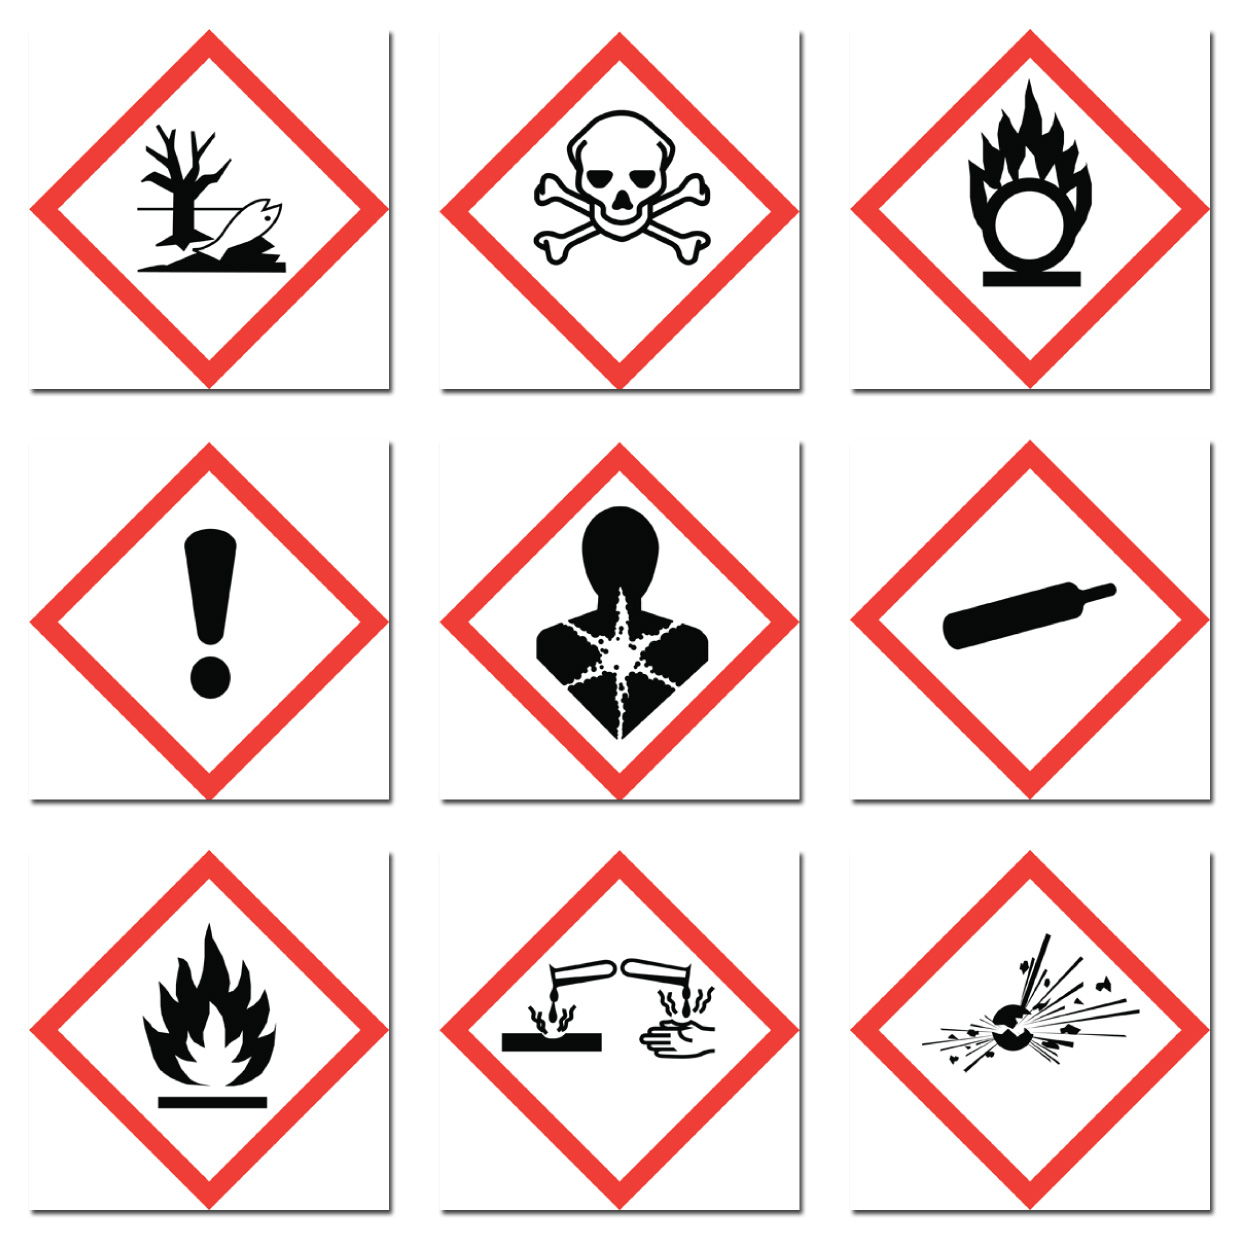 Whmis 2015 Ghs Safety Made Easy